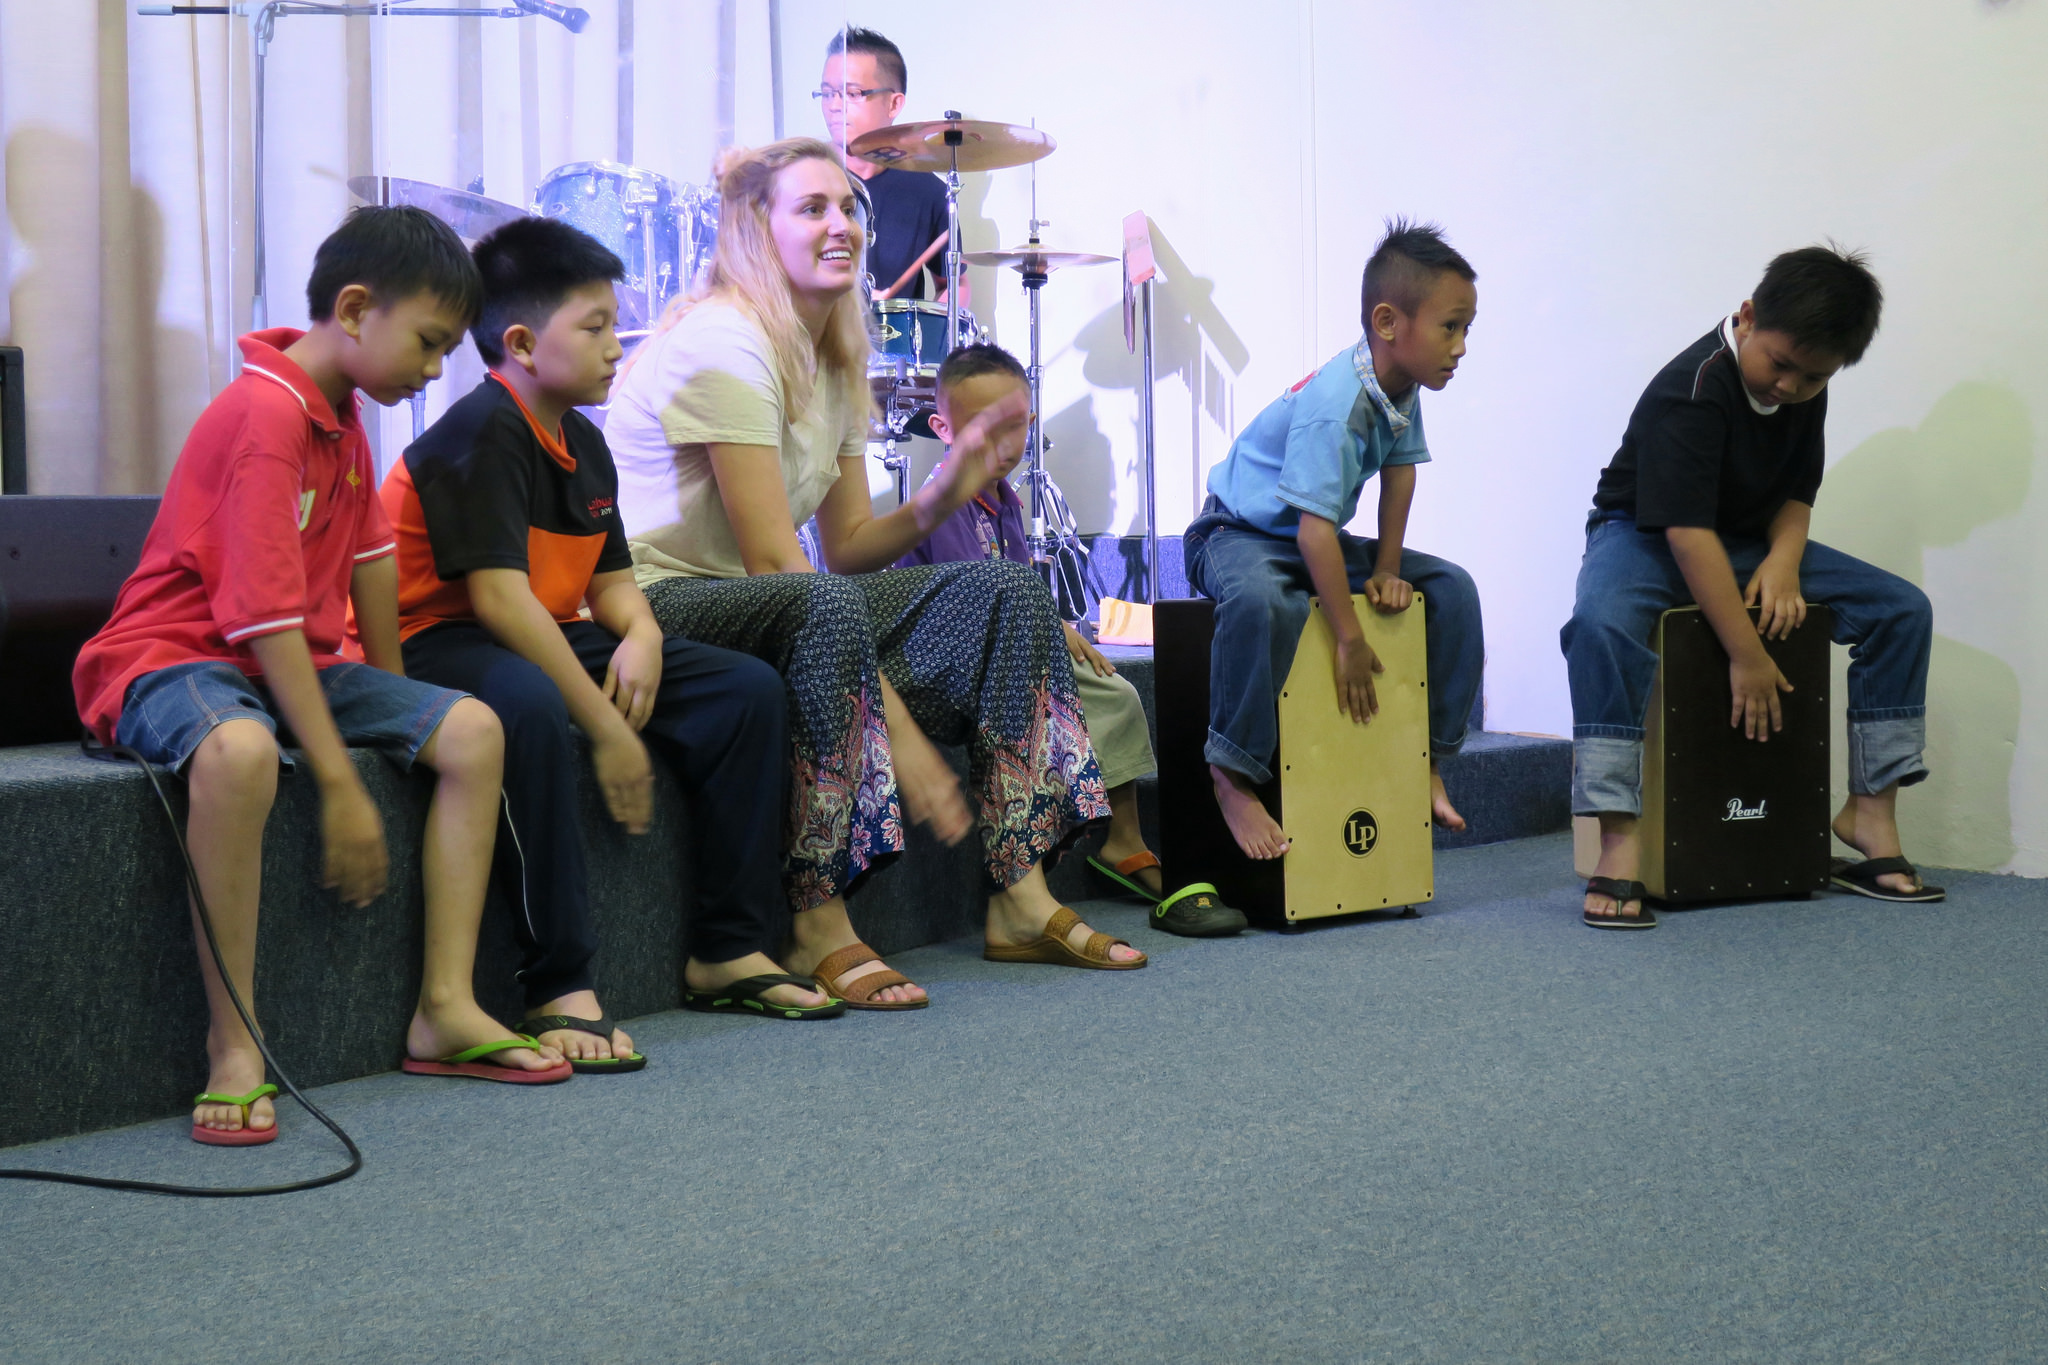 Missions - Malaysia 1